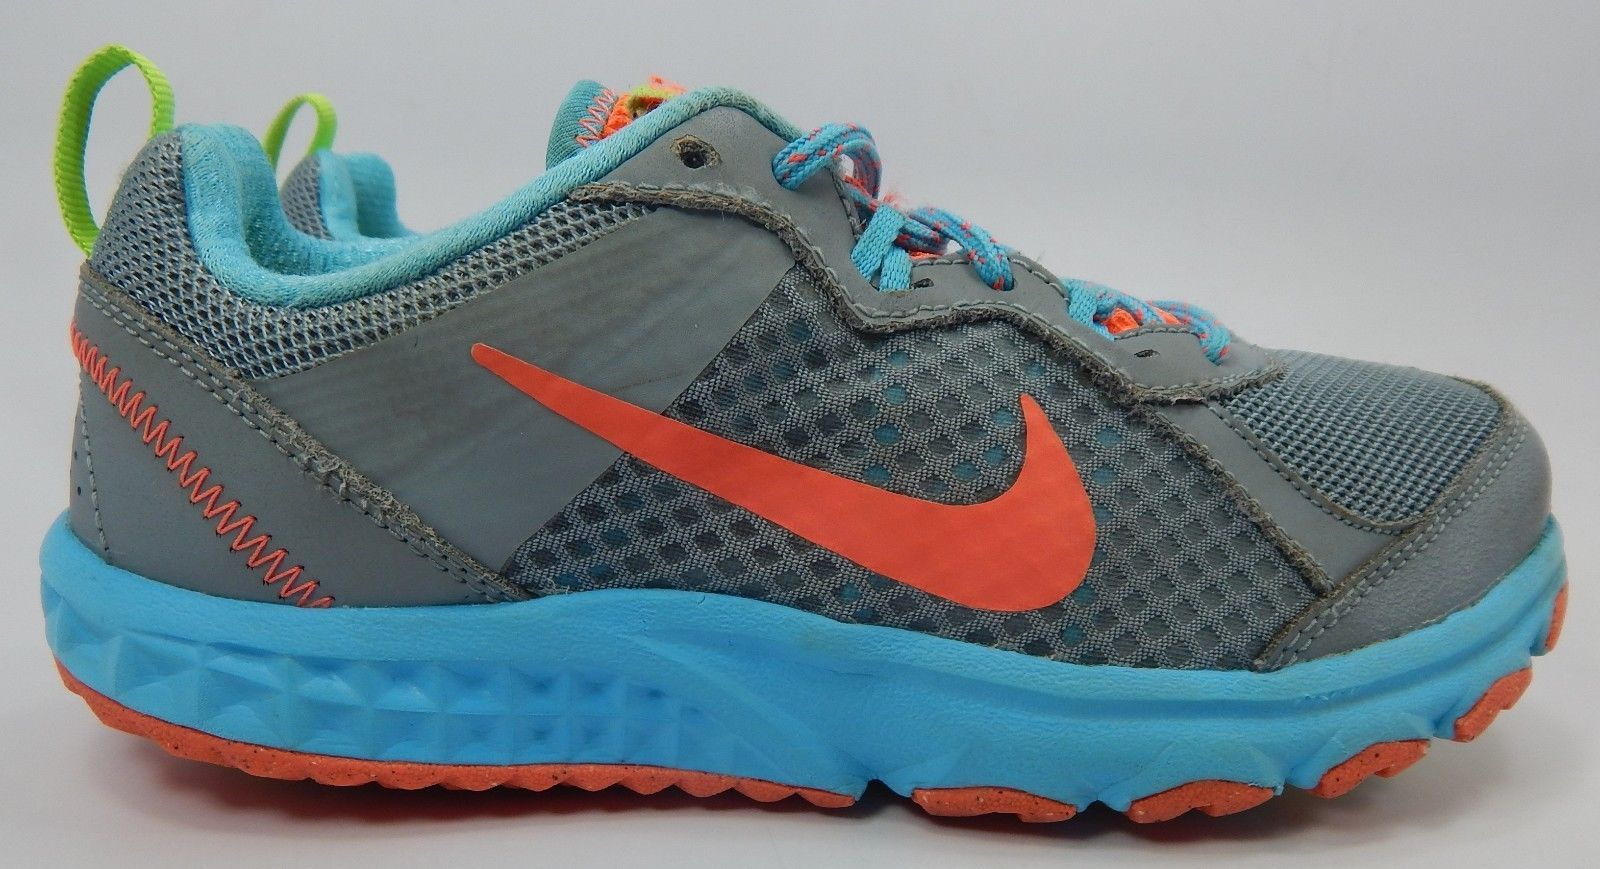 buy popular 5c1ca 424f9 Nike Wild Trail Size 6 M (B) EU 36.5 Women s and 50 similar items